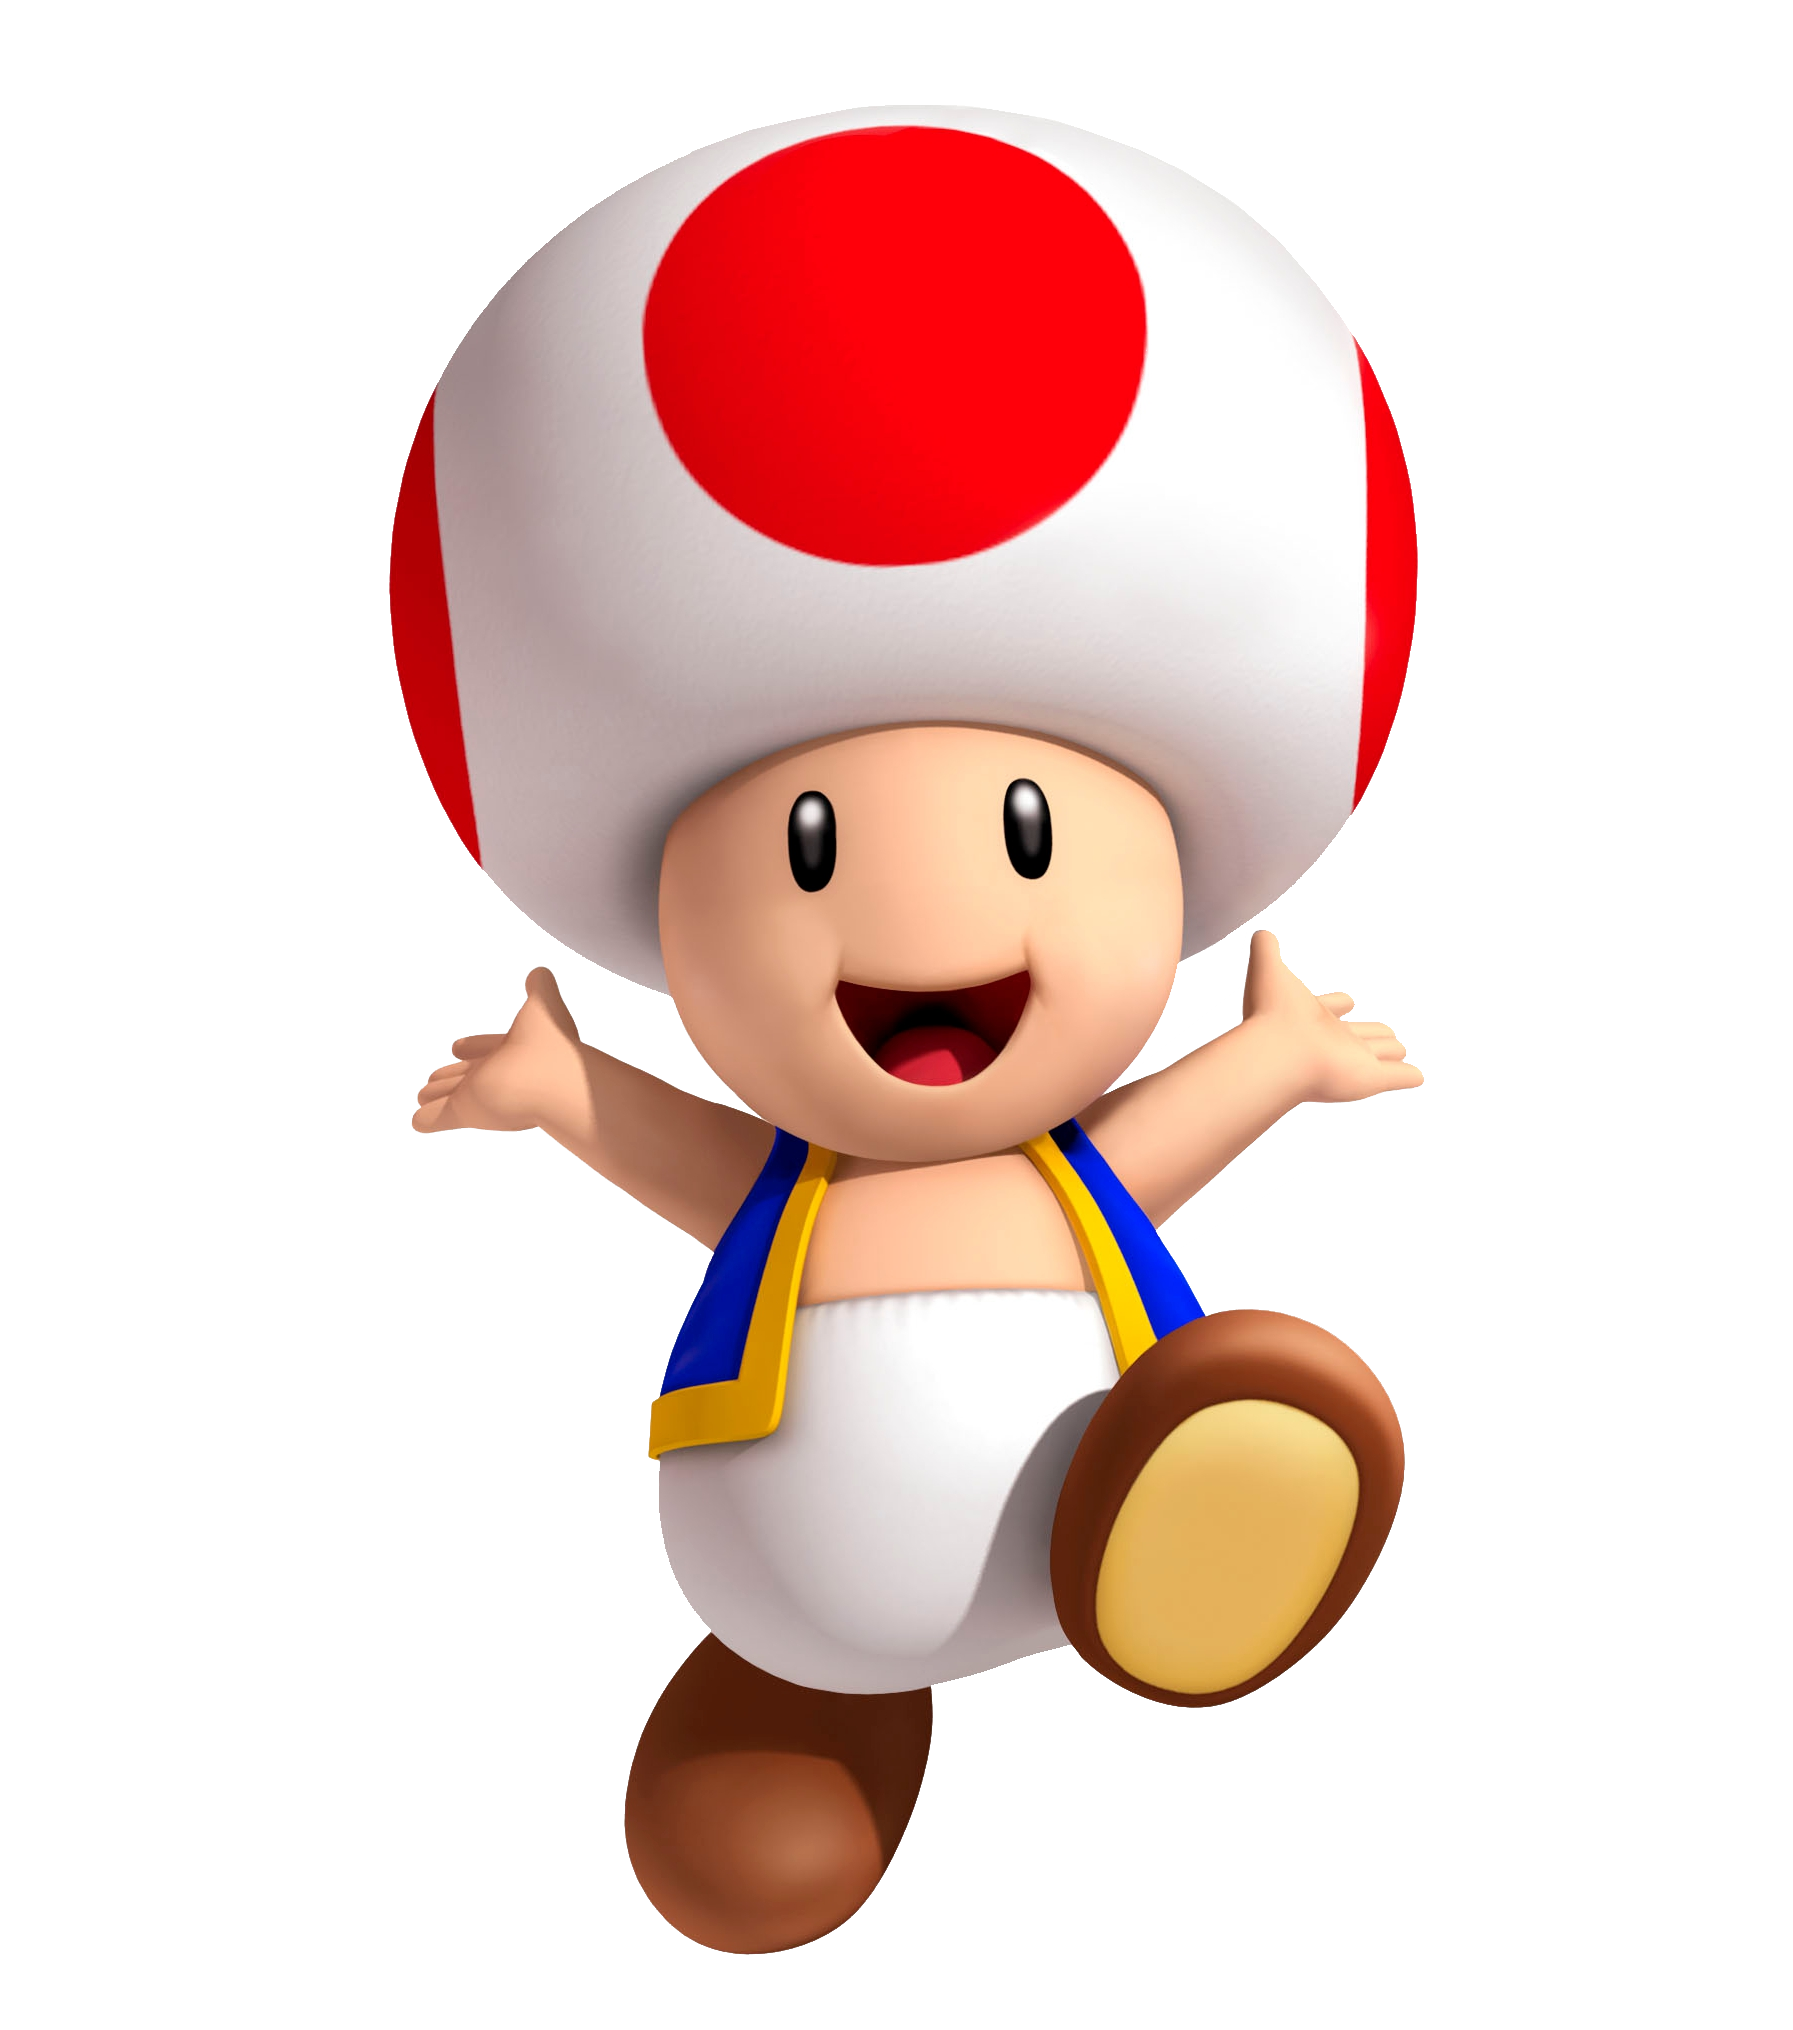 TOAD for Oracle 13.1.1.5